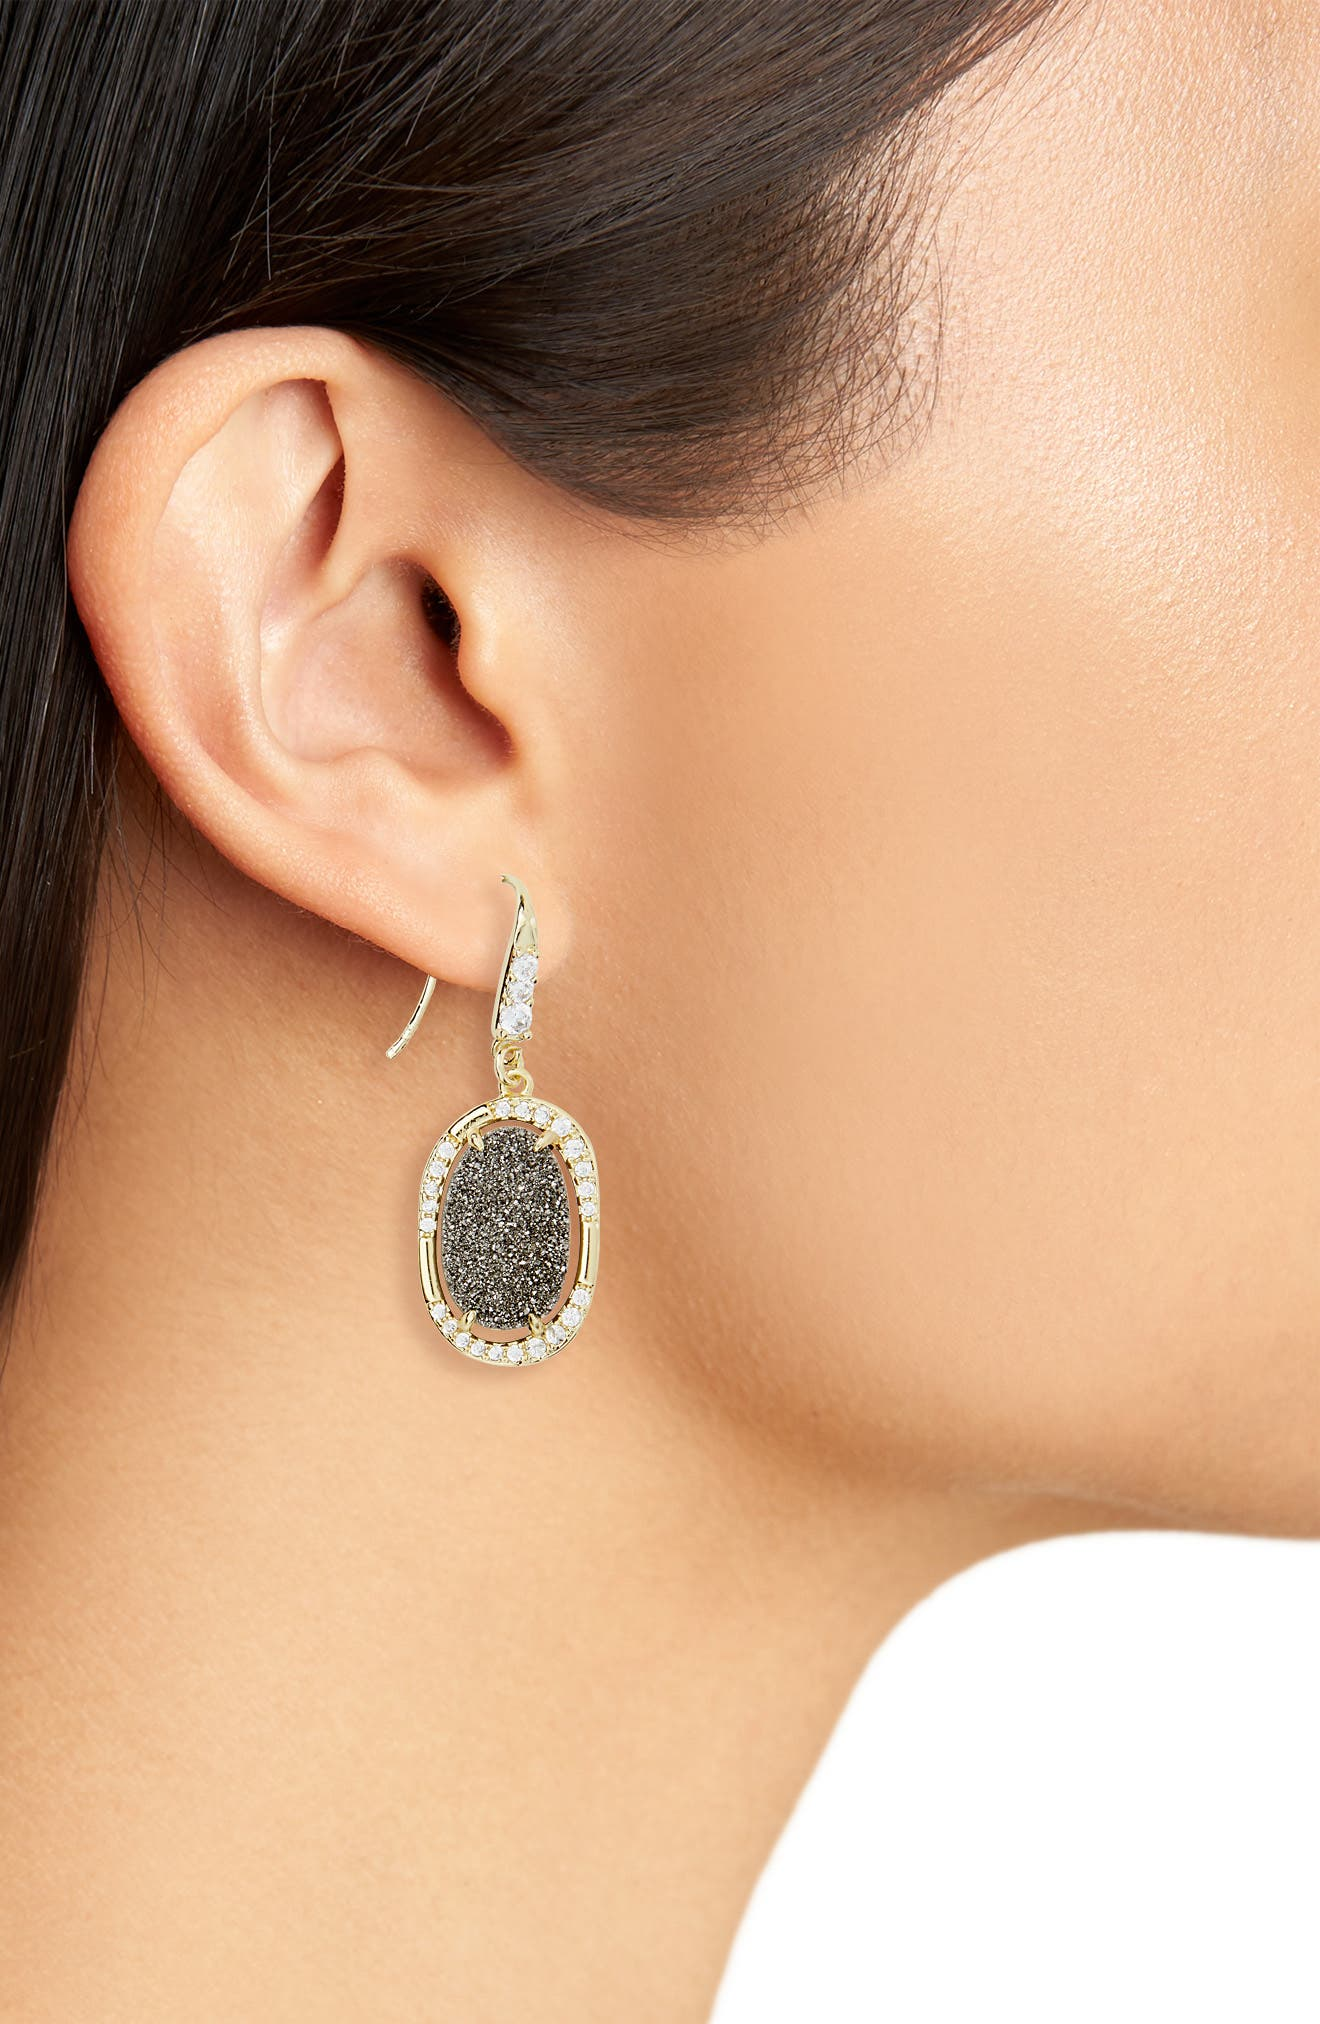 Kathy Drop Earrings,                             Alternate thumbnail 2, color,                             710